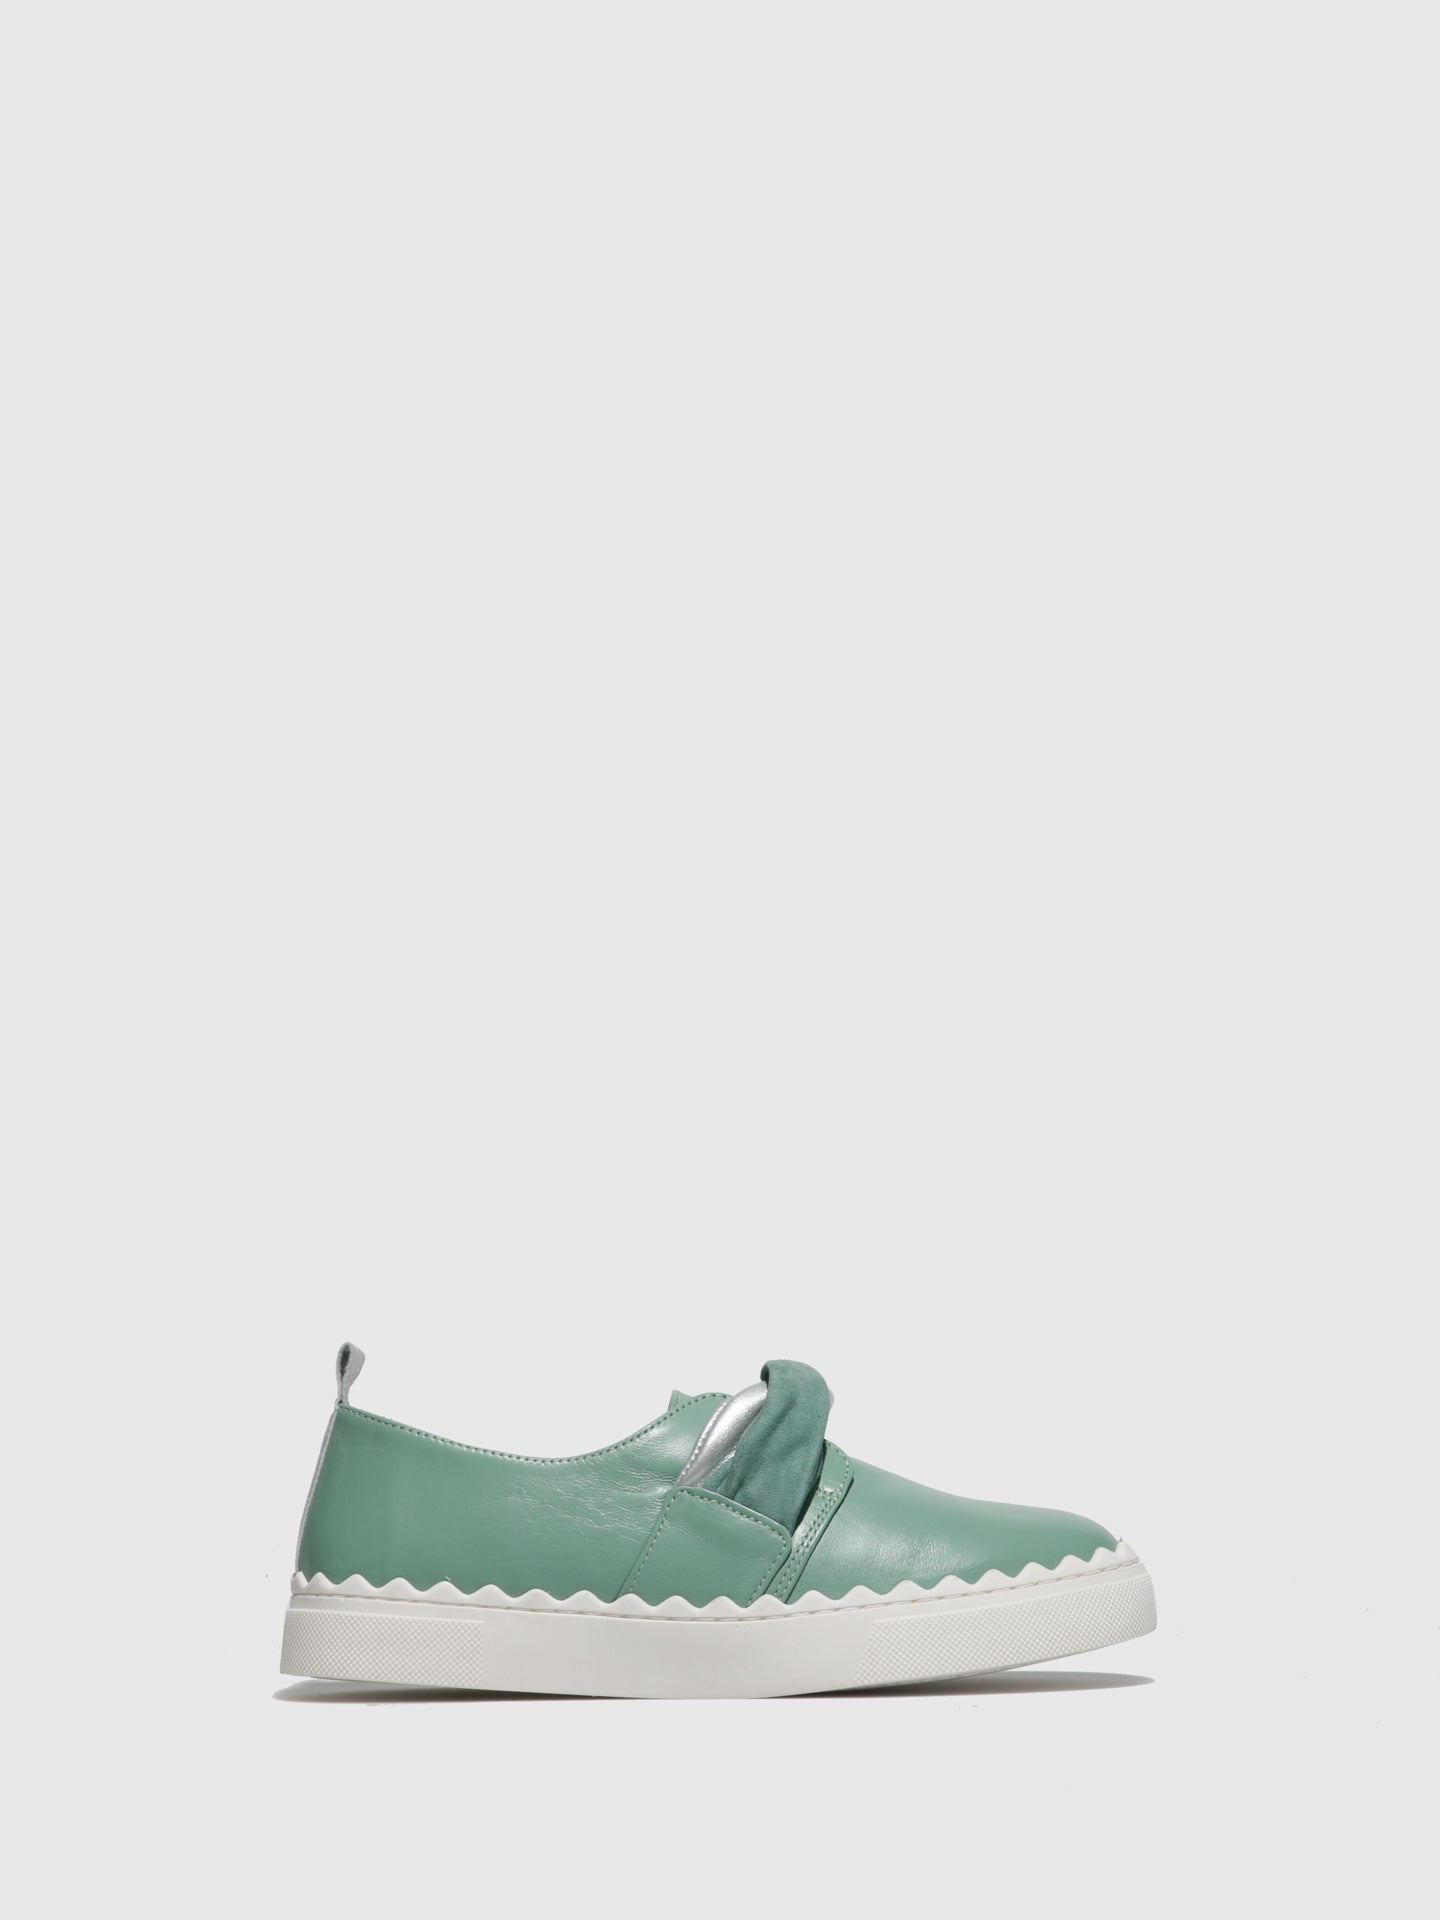 JJ Heitor Green Leather Slip-on Shoes